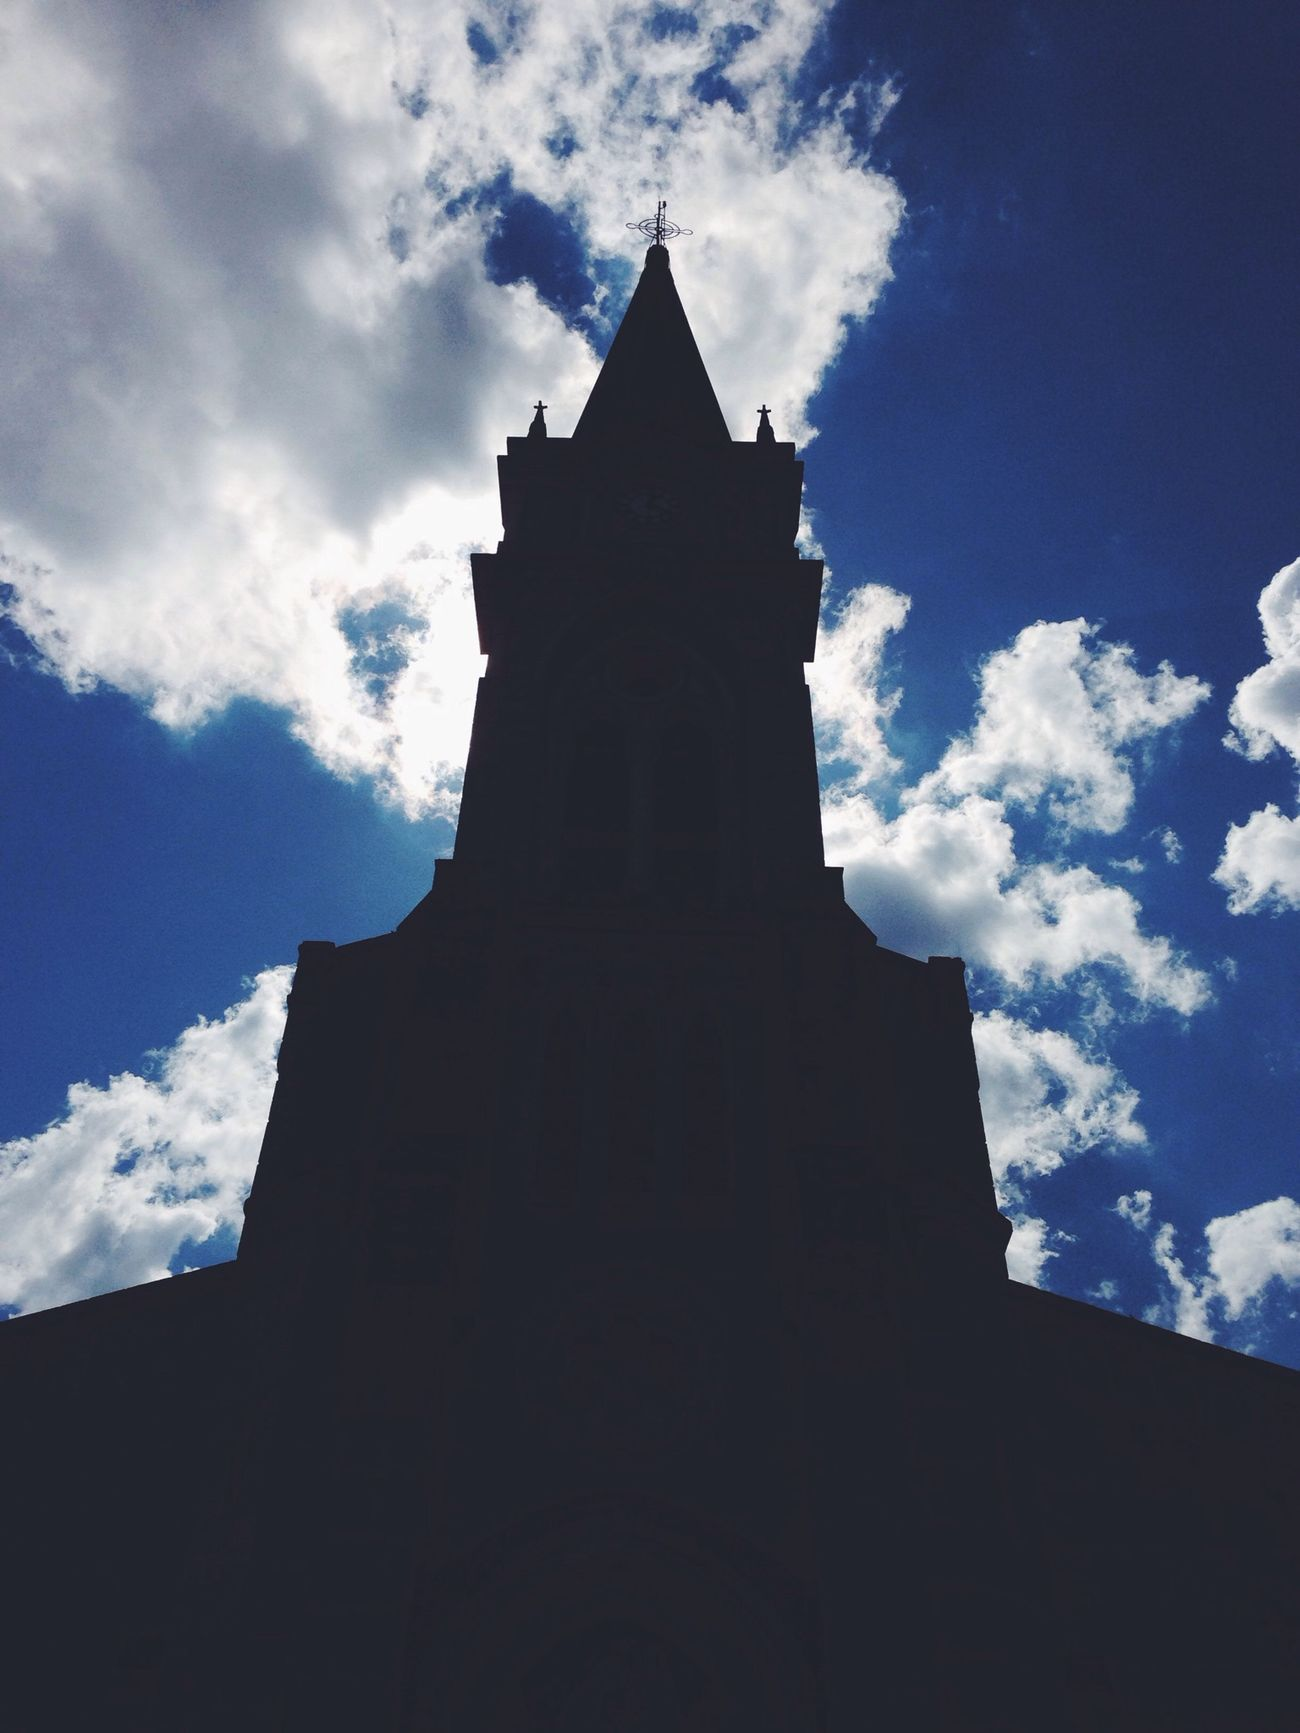 Architecture Silhouette Blue Sky Church